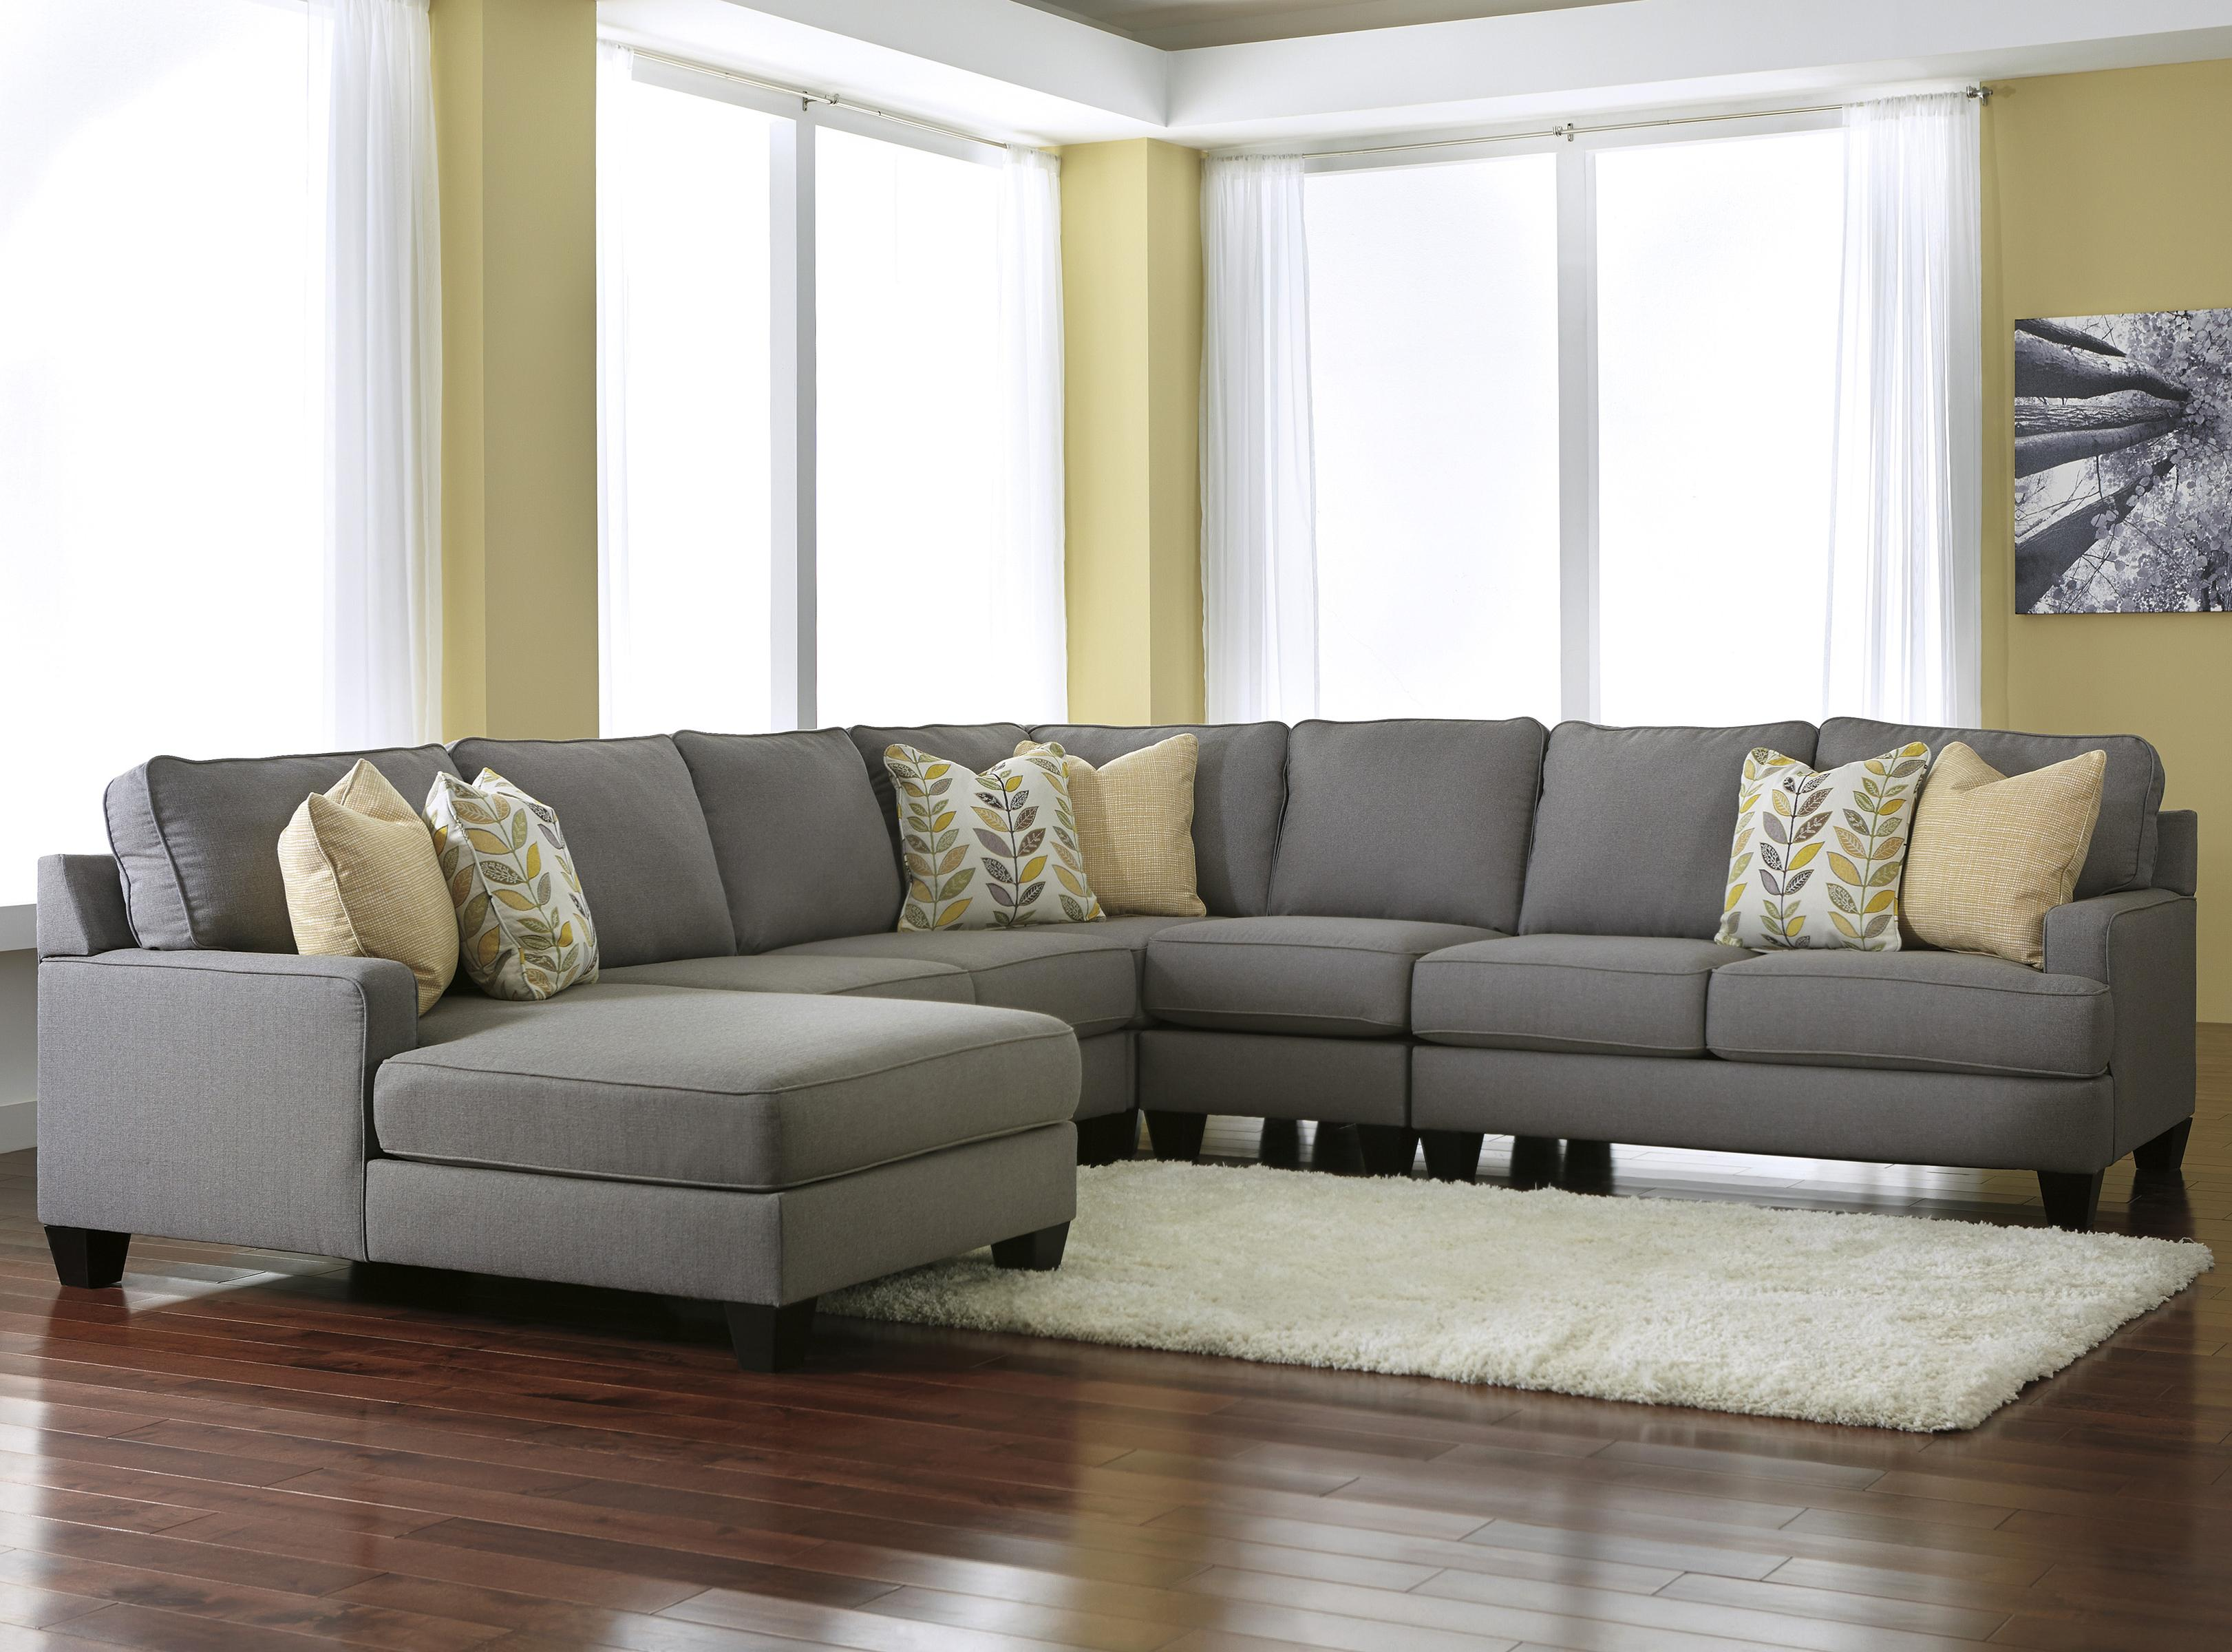 Signature Design by Ashley Chamberly - Alloy 5-Piece Sectional Sofa with Left Chaise - : left chaise sectional - Sectionals, Sofas & Couches